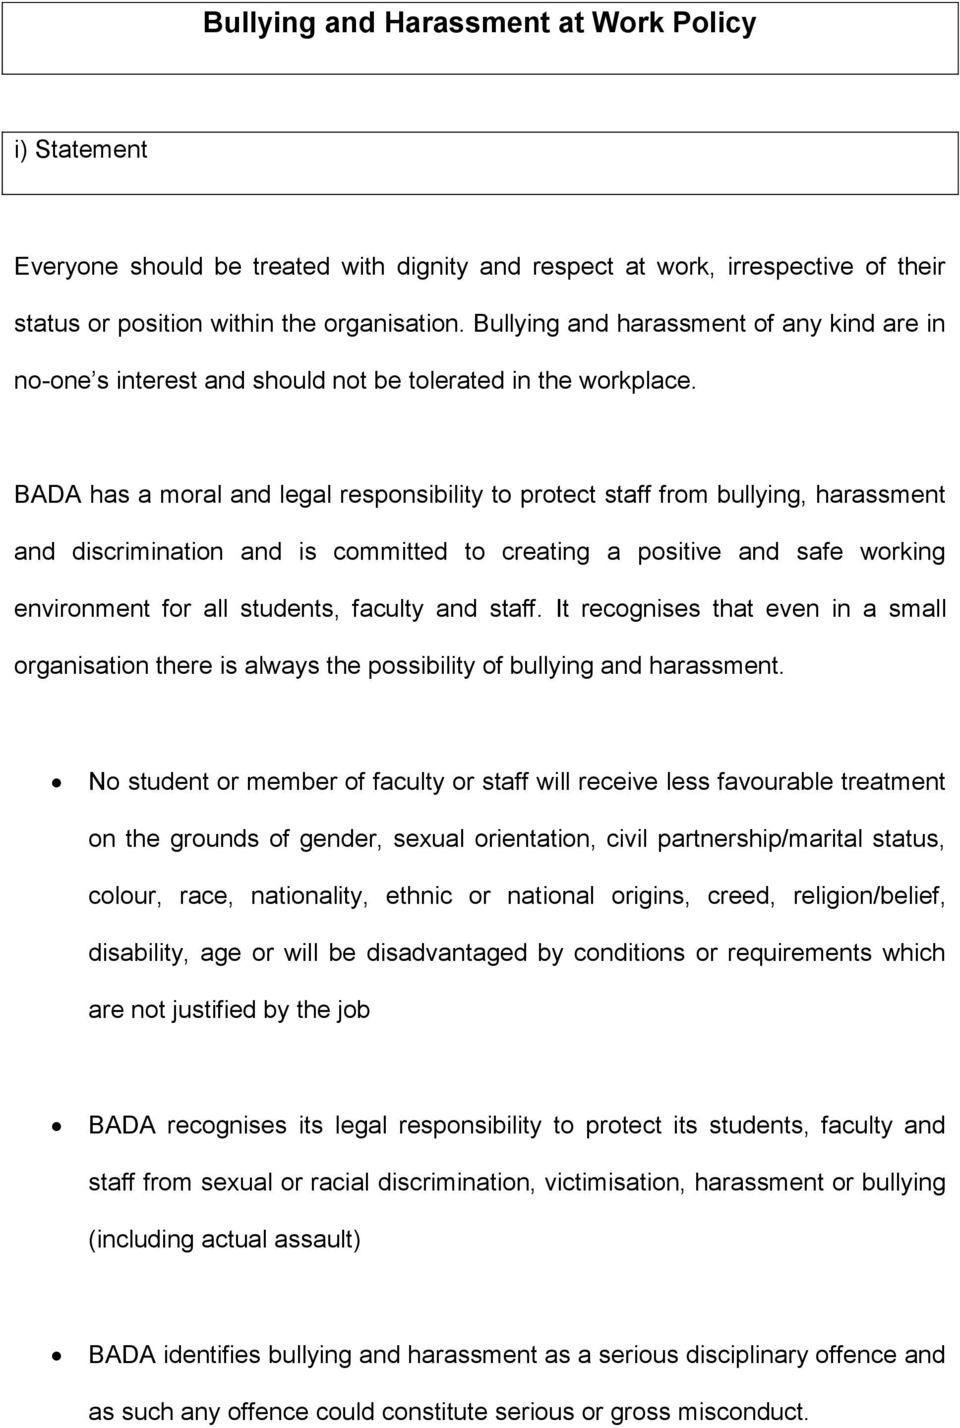 BADA has a moral and legal responsibility to protect staff from bullying, harassment and discrimination and is committed to creating a positive and safe working environment for all students, faculty